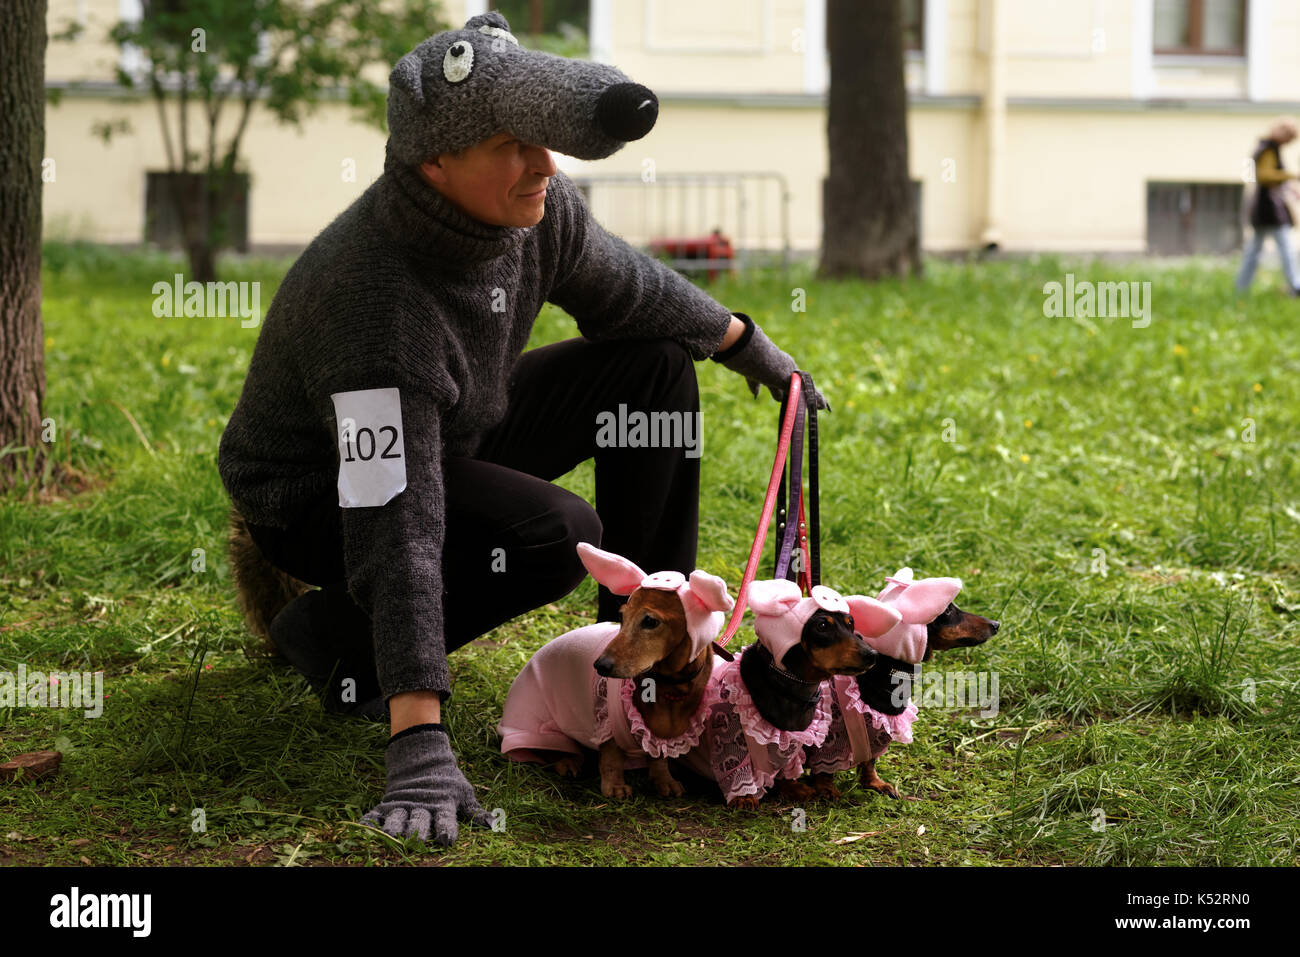 St. Petersburg Russia - May 28 2016 Man with his dogs in costumes of Three Little Pigs during Dachshund parade. The traditional festival is timed t & St. Petersburg Russia - May 28 2016: Man with his dogs in costumes ...